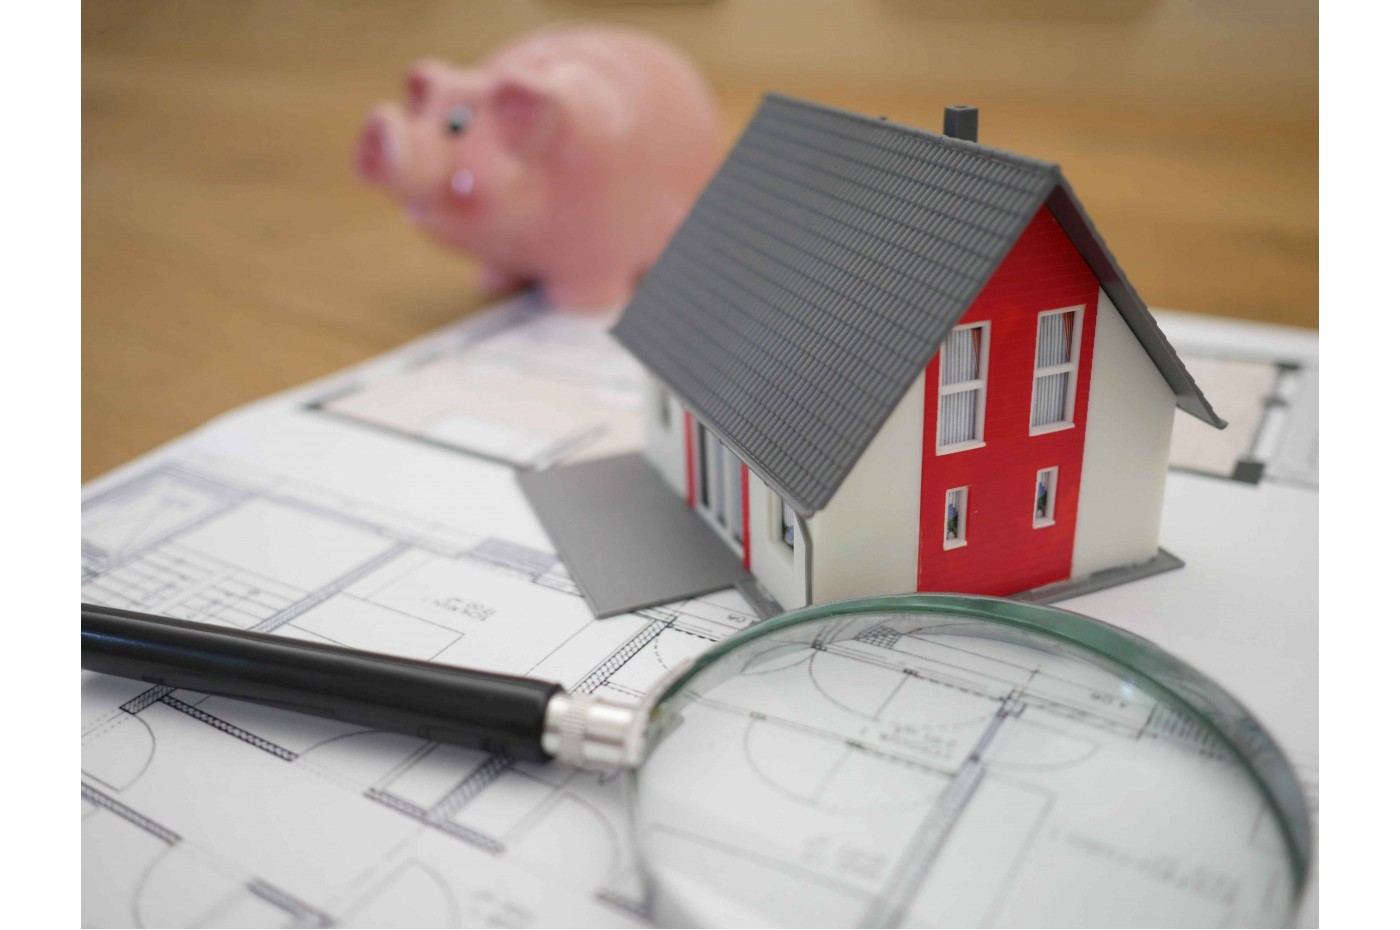 Model of a home sitting on top of blueprints, with a piggy bank in the background.